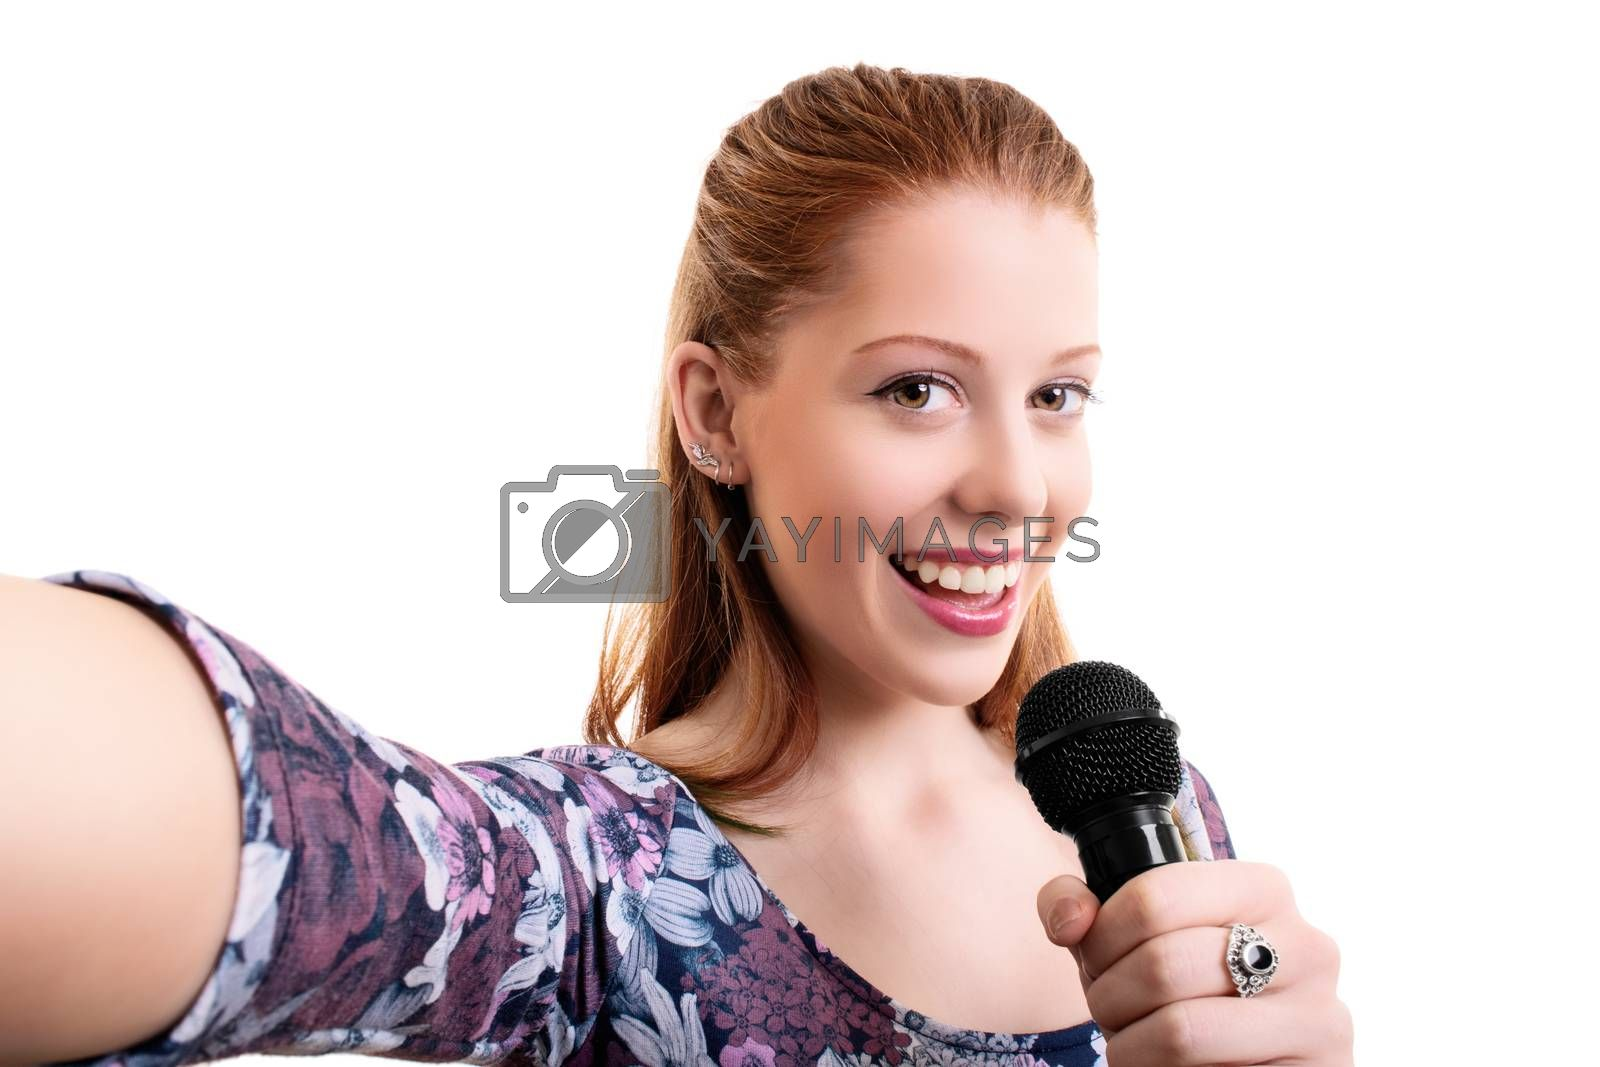 Beautiful young girl holding a microphone and taking a selfie, isolated on white background. Lifestyle, happiness, and social concept. Fashionable girl with a microphone singing and taking a selfie.